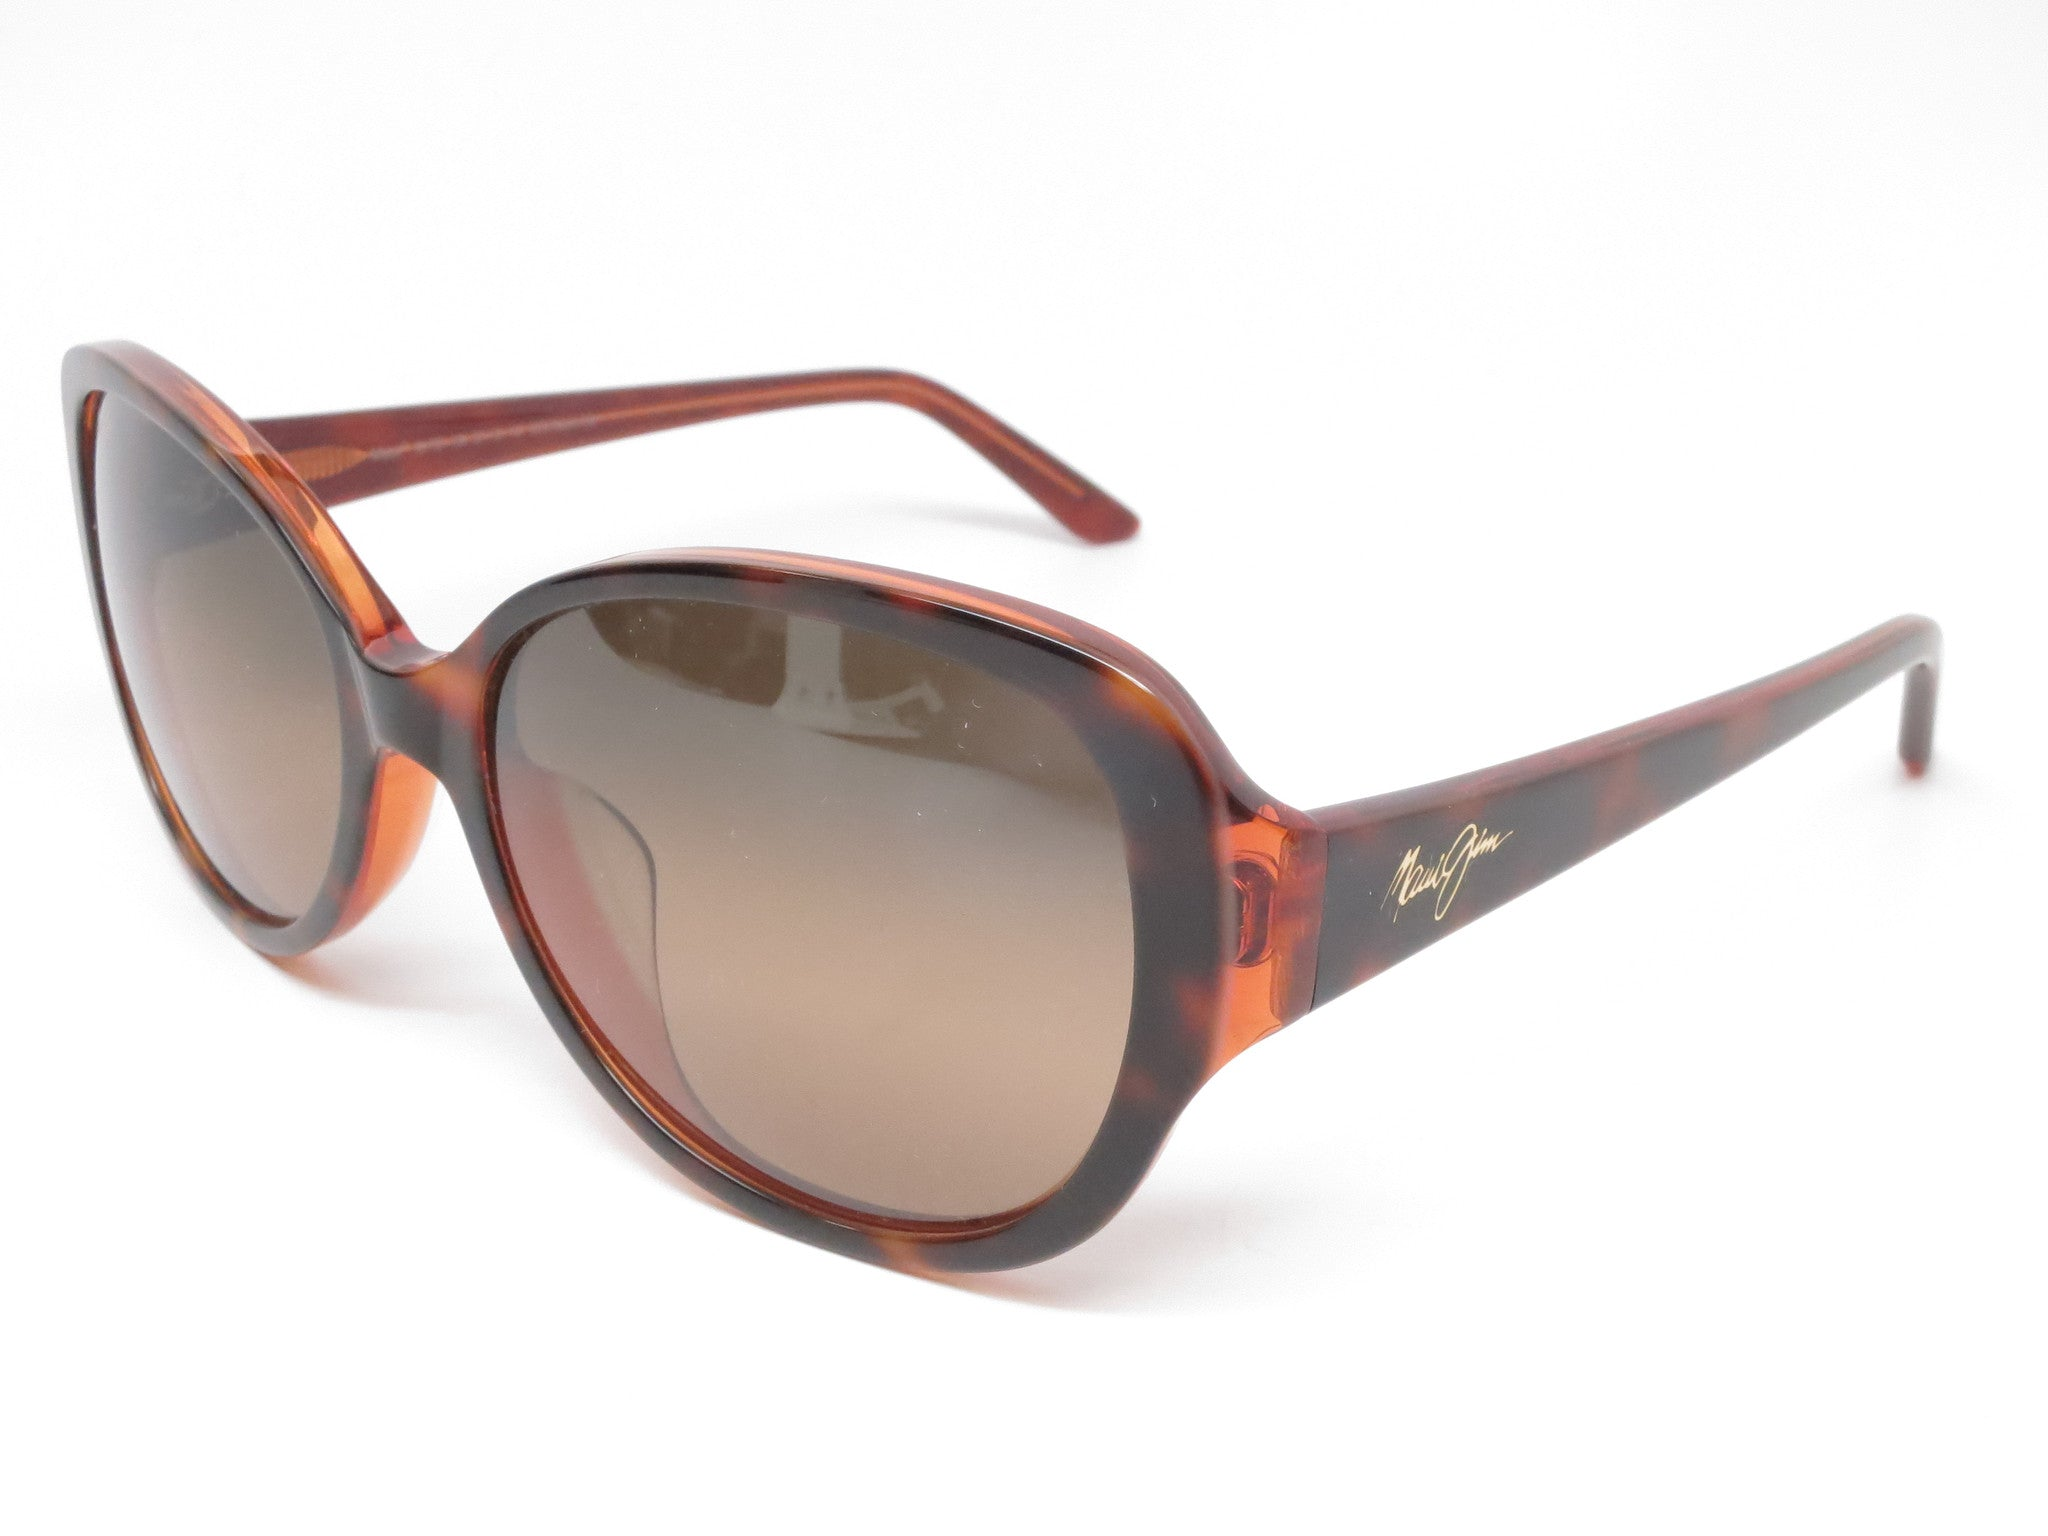 Maui Jim Sunglasses - Color: Tortoise with Caramel Interior GA0J1